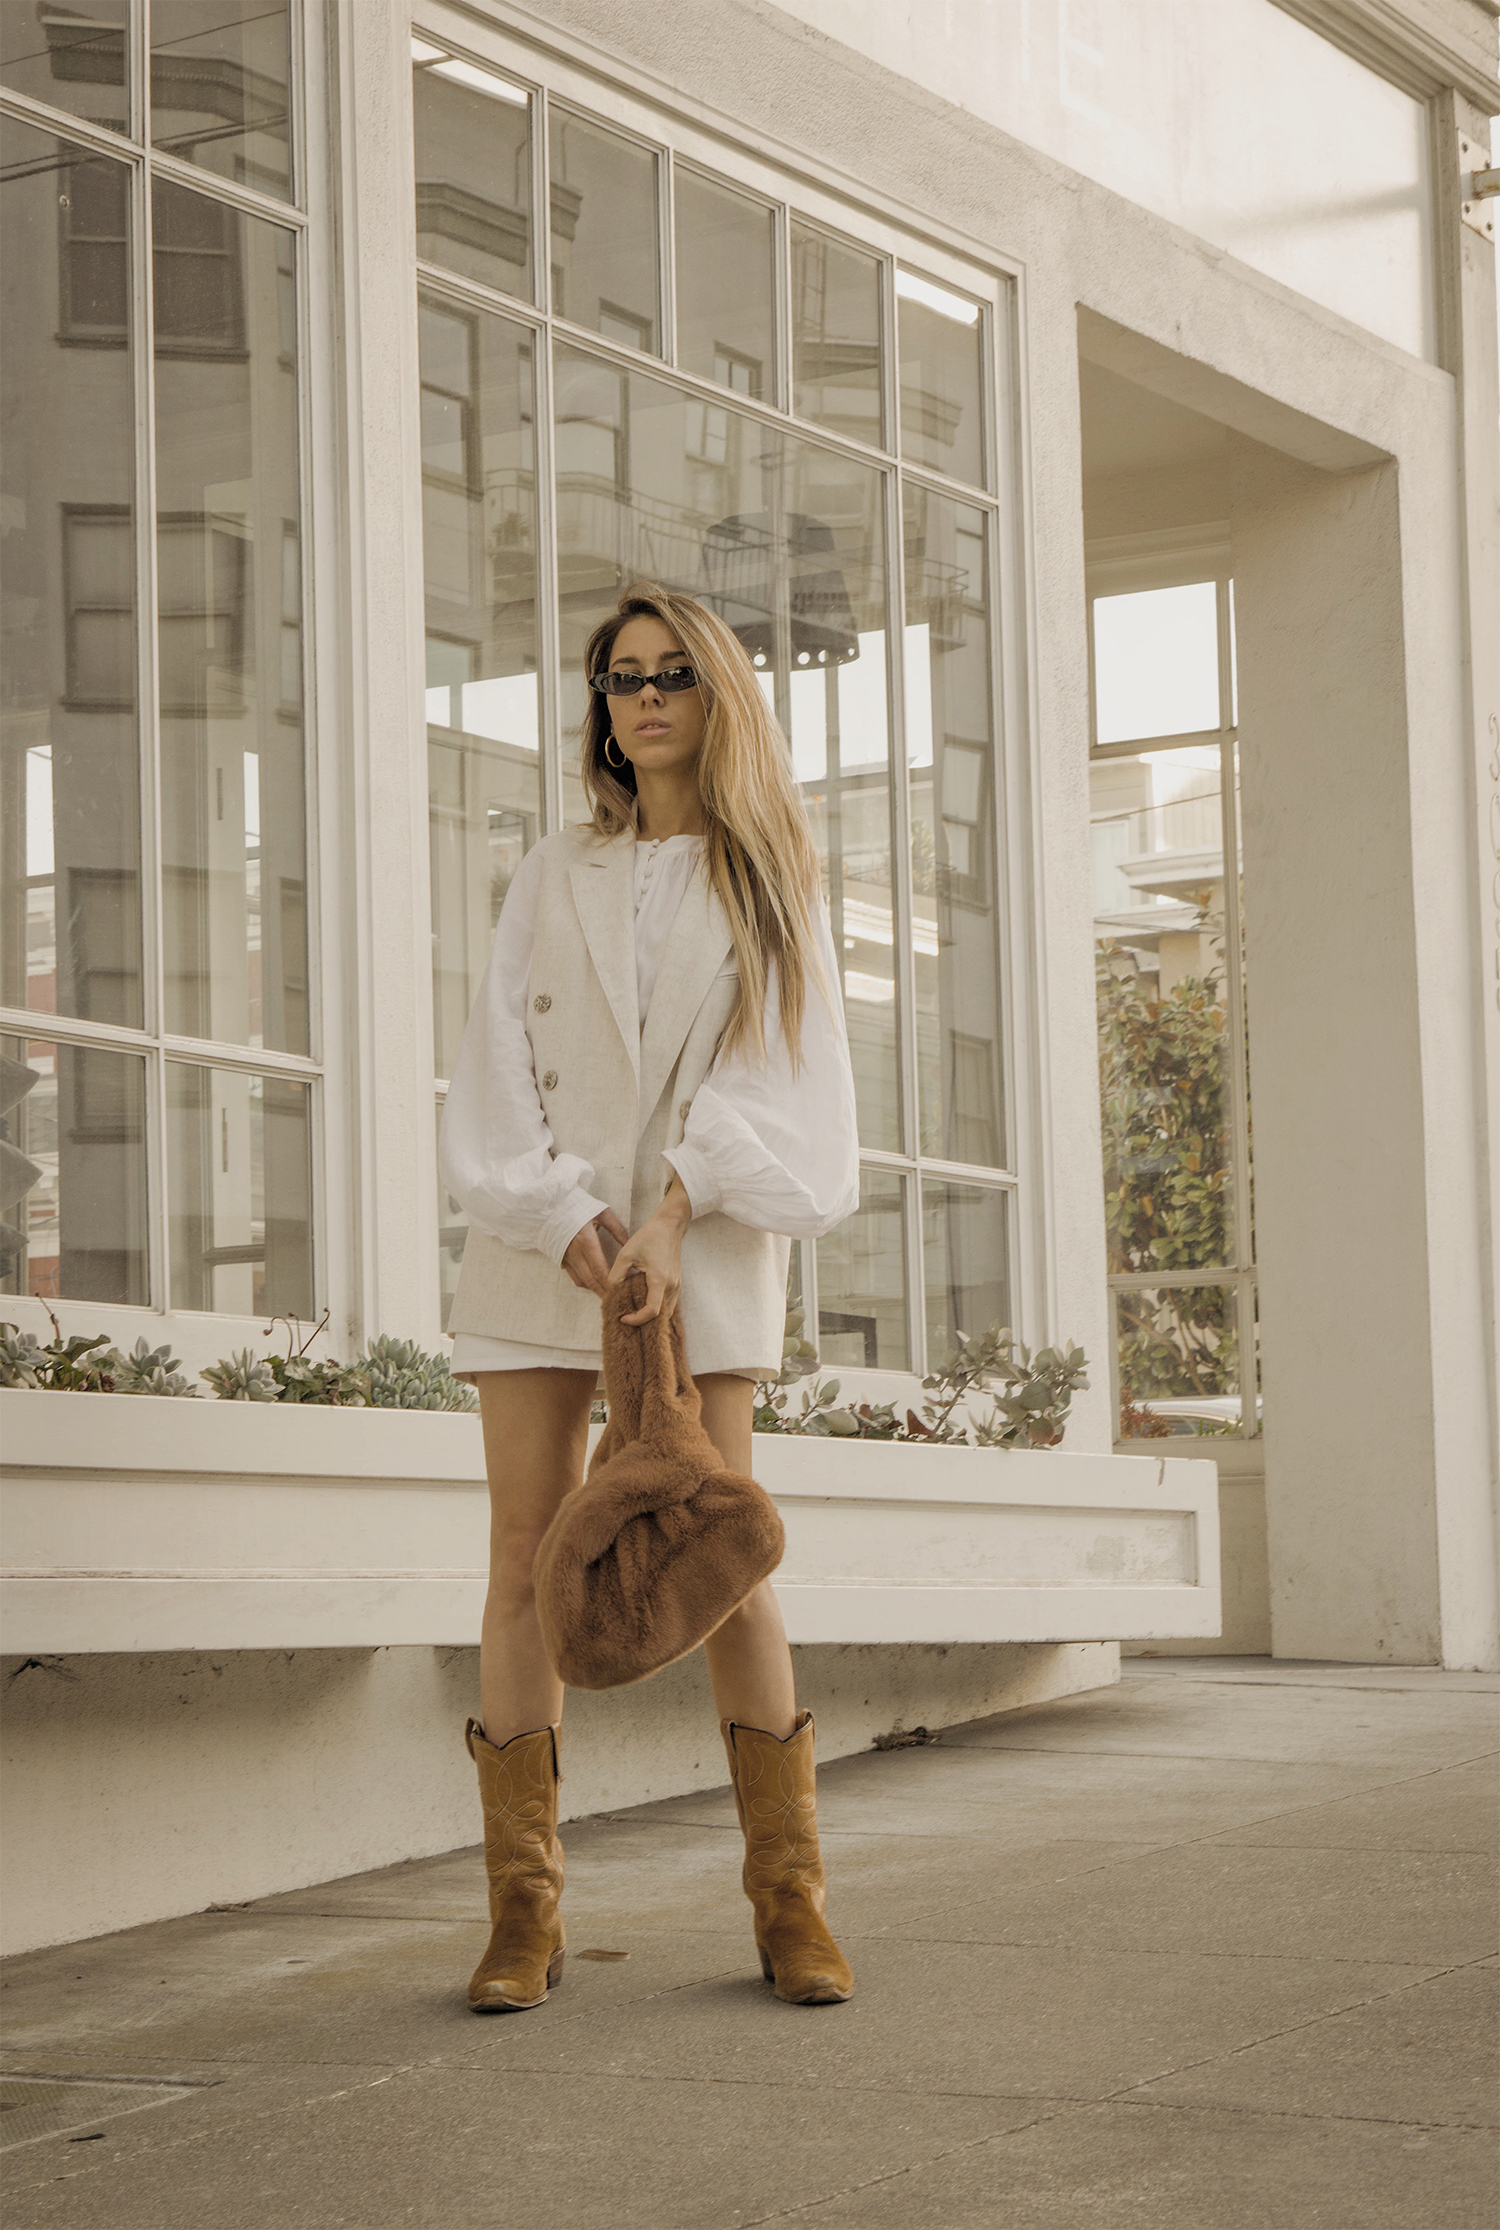 total_all_white_outfit_look_street_style_western_boots_isabel_marant_inspired_fur_bag_vest_denim_skirt_summer_2018_trend_lena_juice_the_white_ocean_04